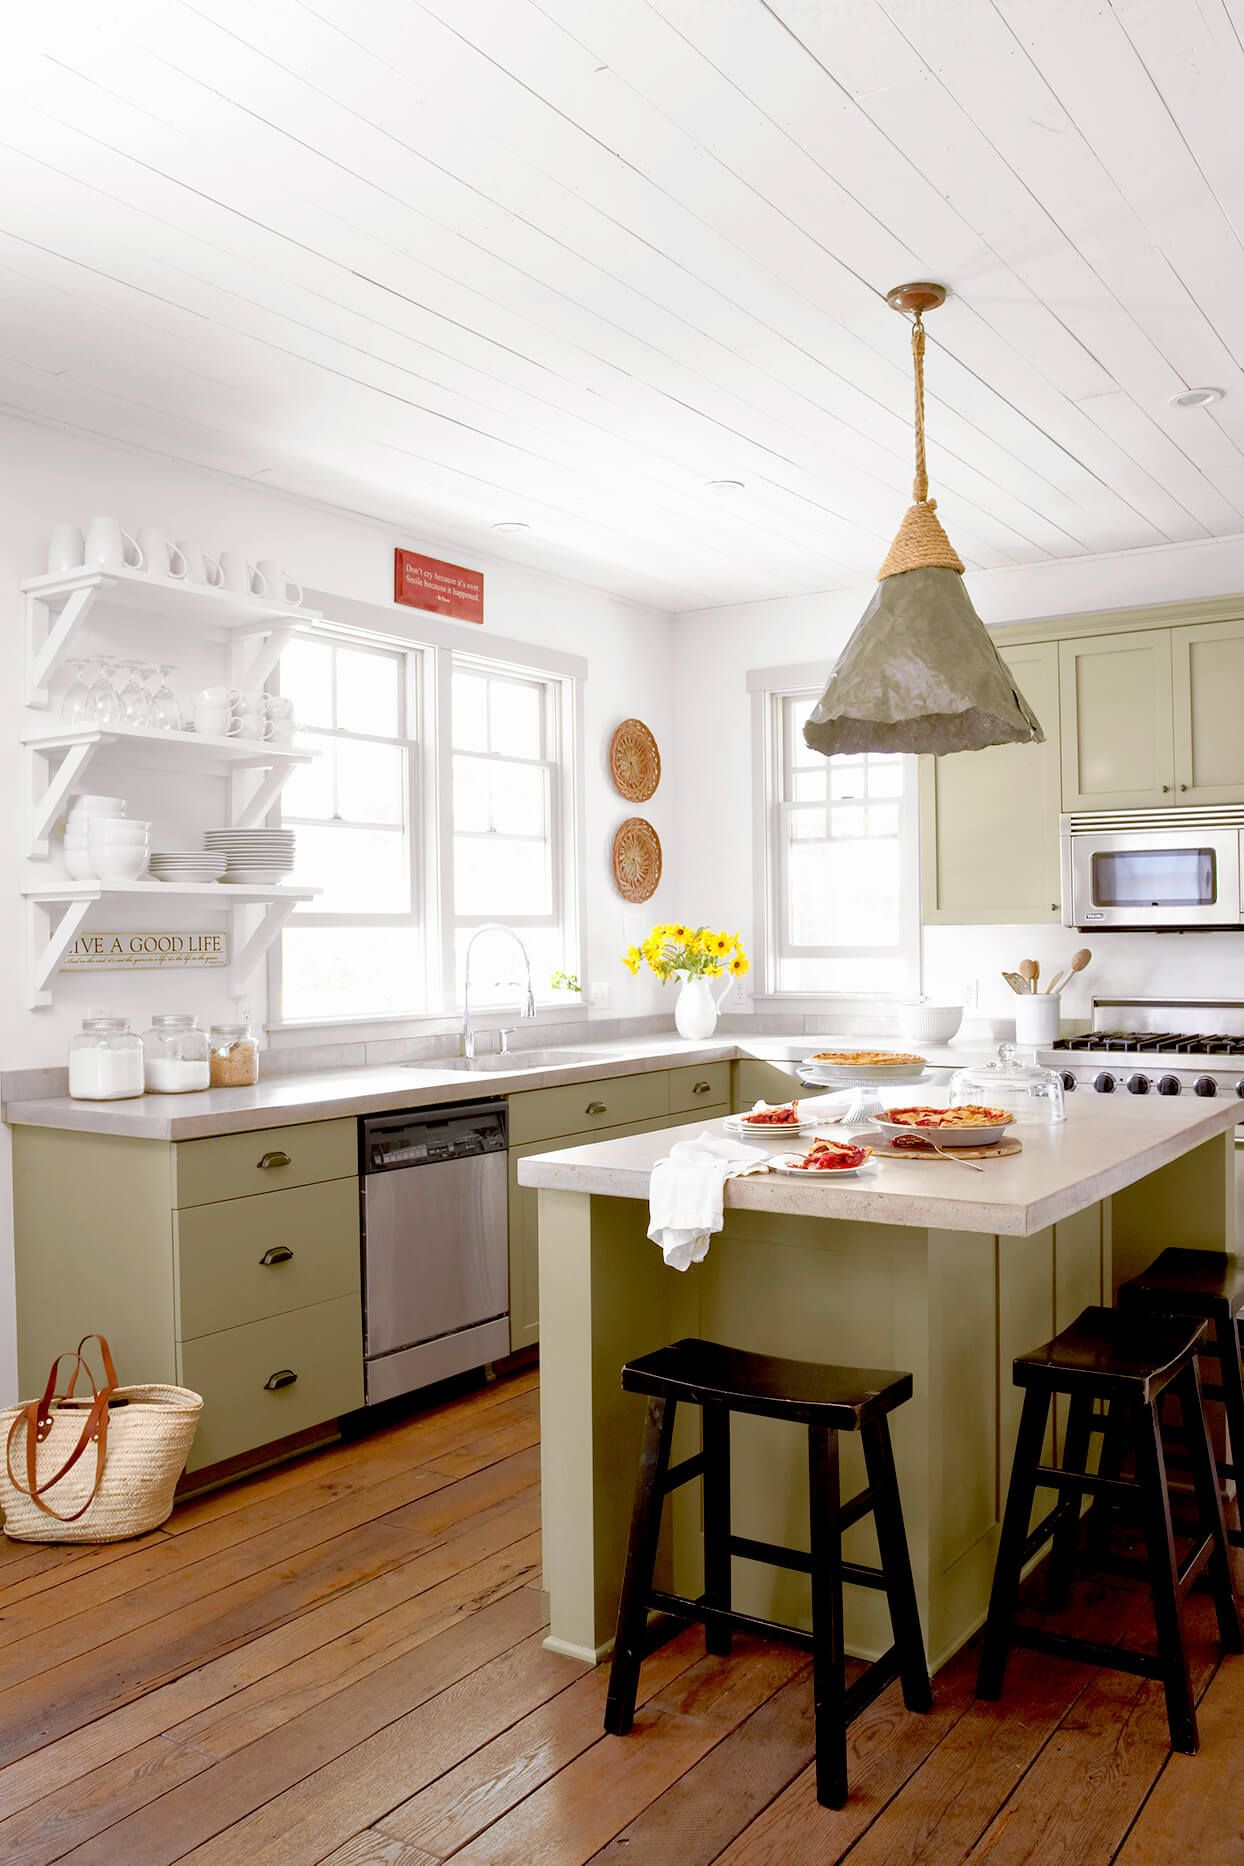 17 farmhouse kitchen ideas that give a new atmosphere to on best farmhouse kitchen decor ideas and remodel create your dreams id=56762